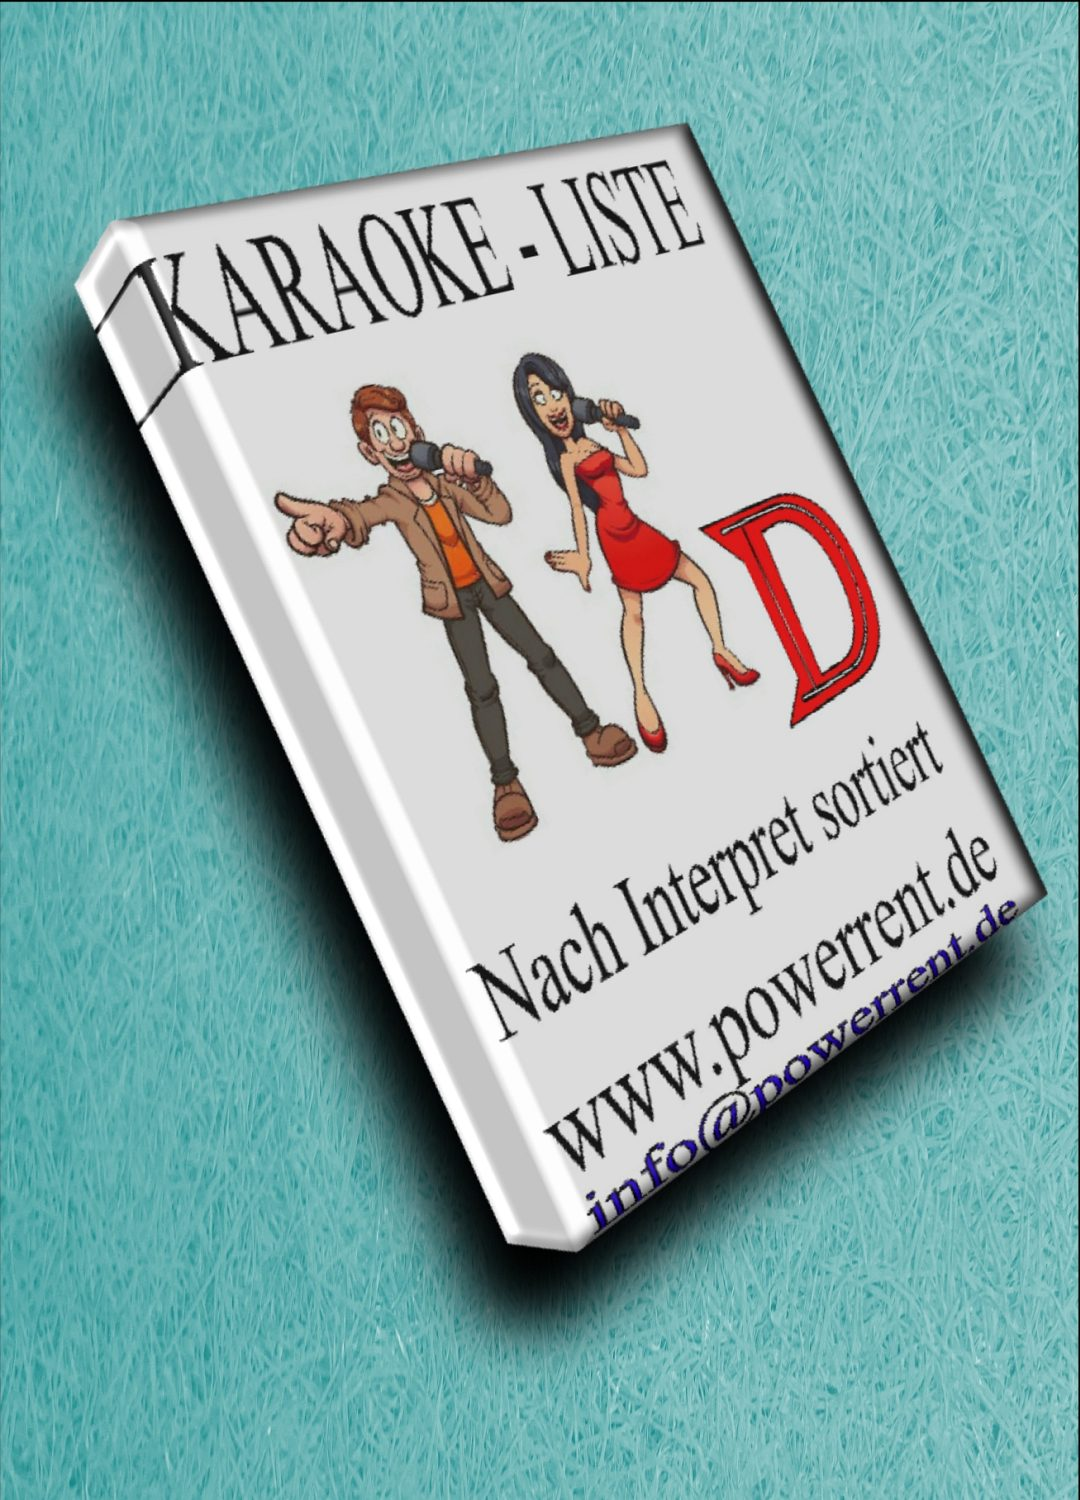 Karaoke Cover Liste nach Interpret D